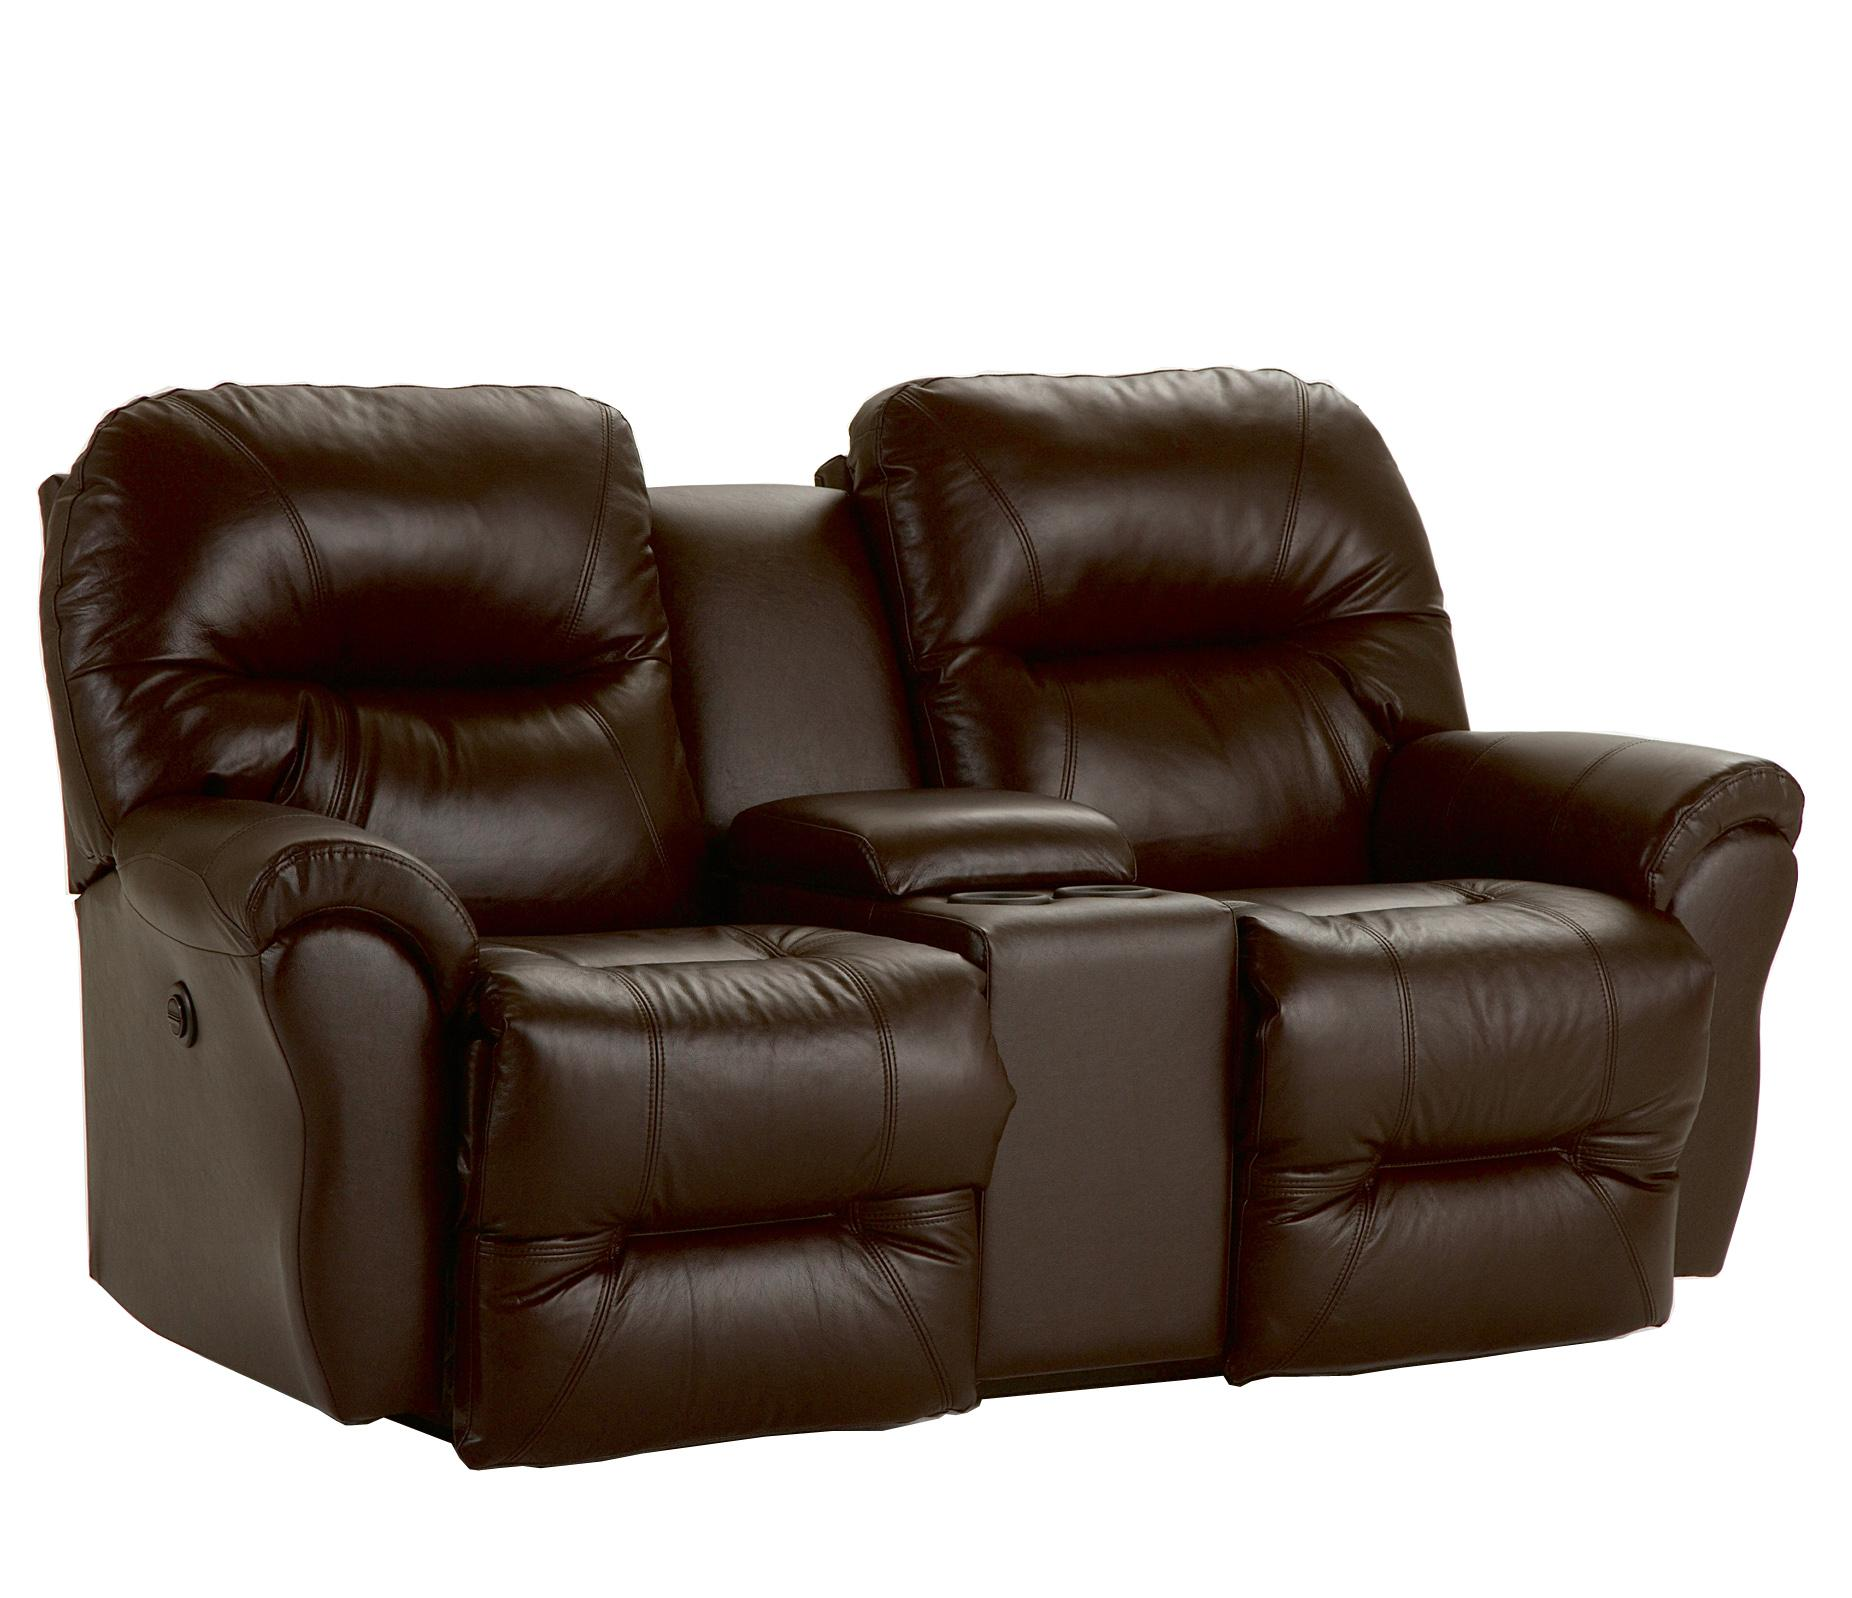 Bodie power space saver reclining loveseat with storage console by best home furnishings wolf Storage loveseat